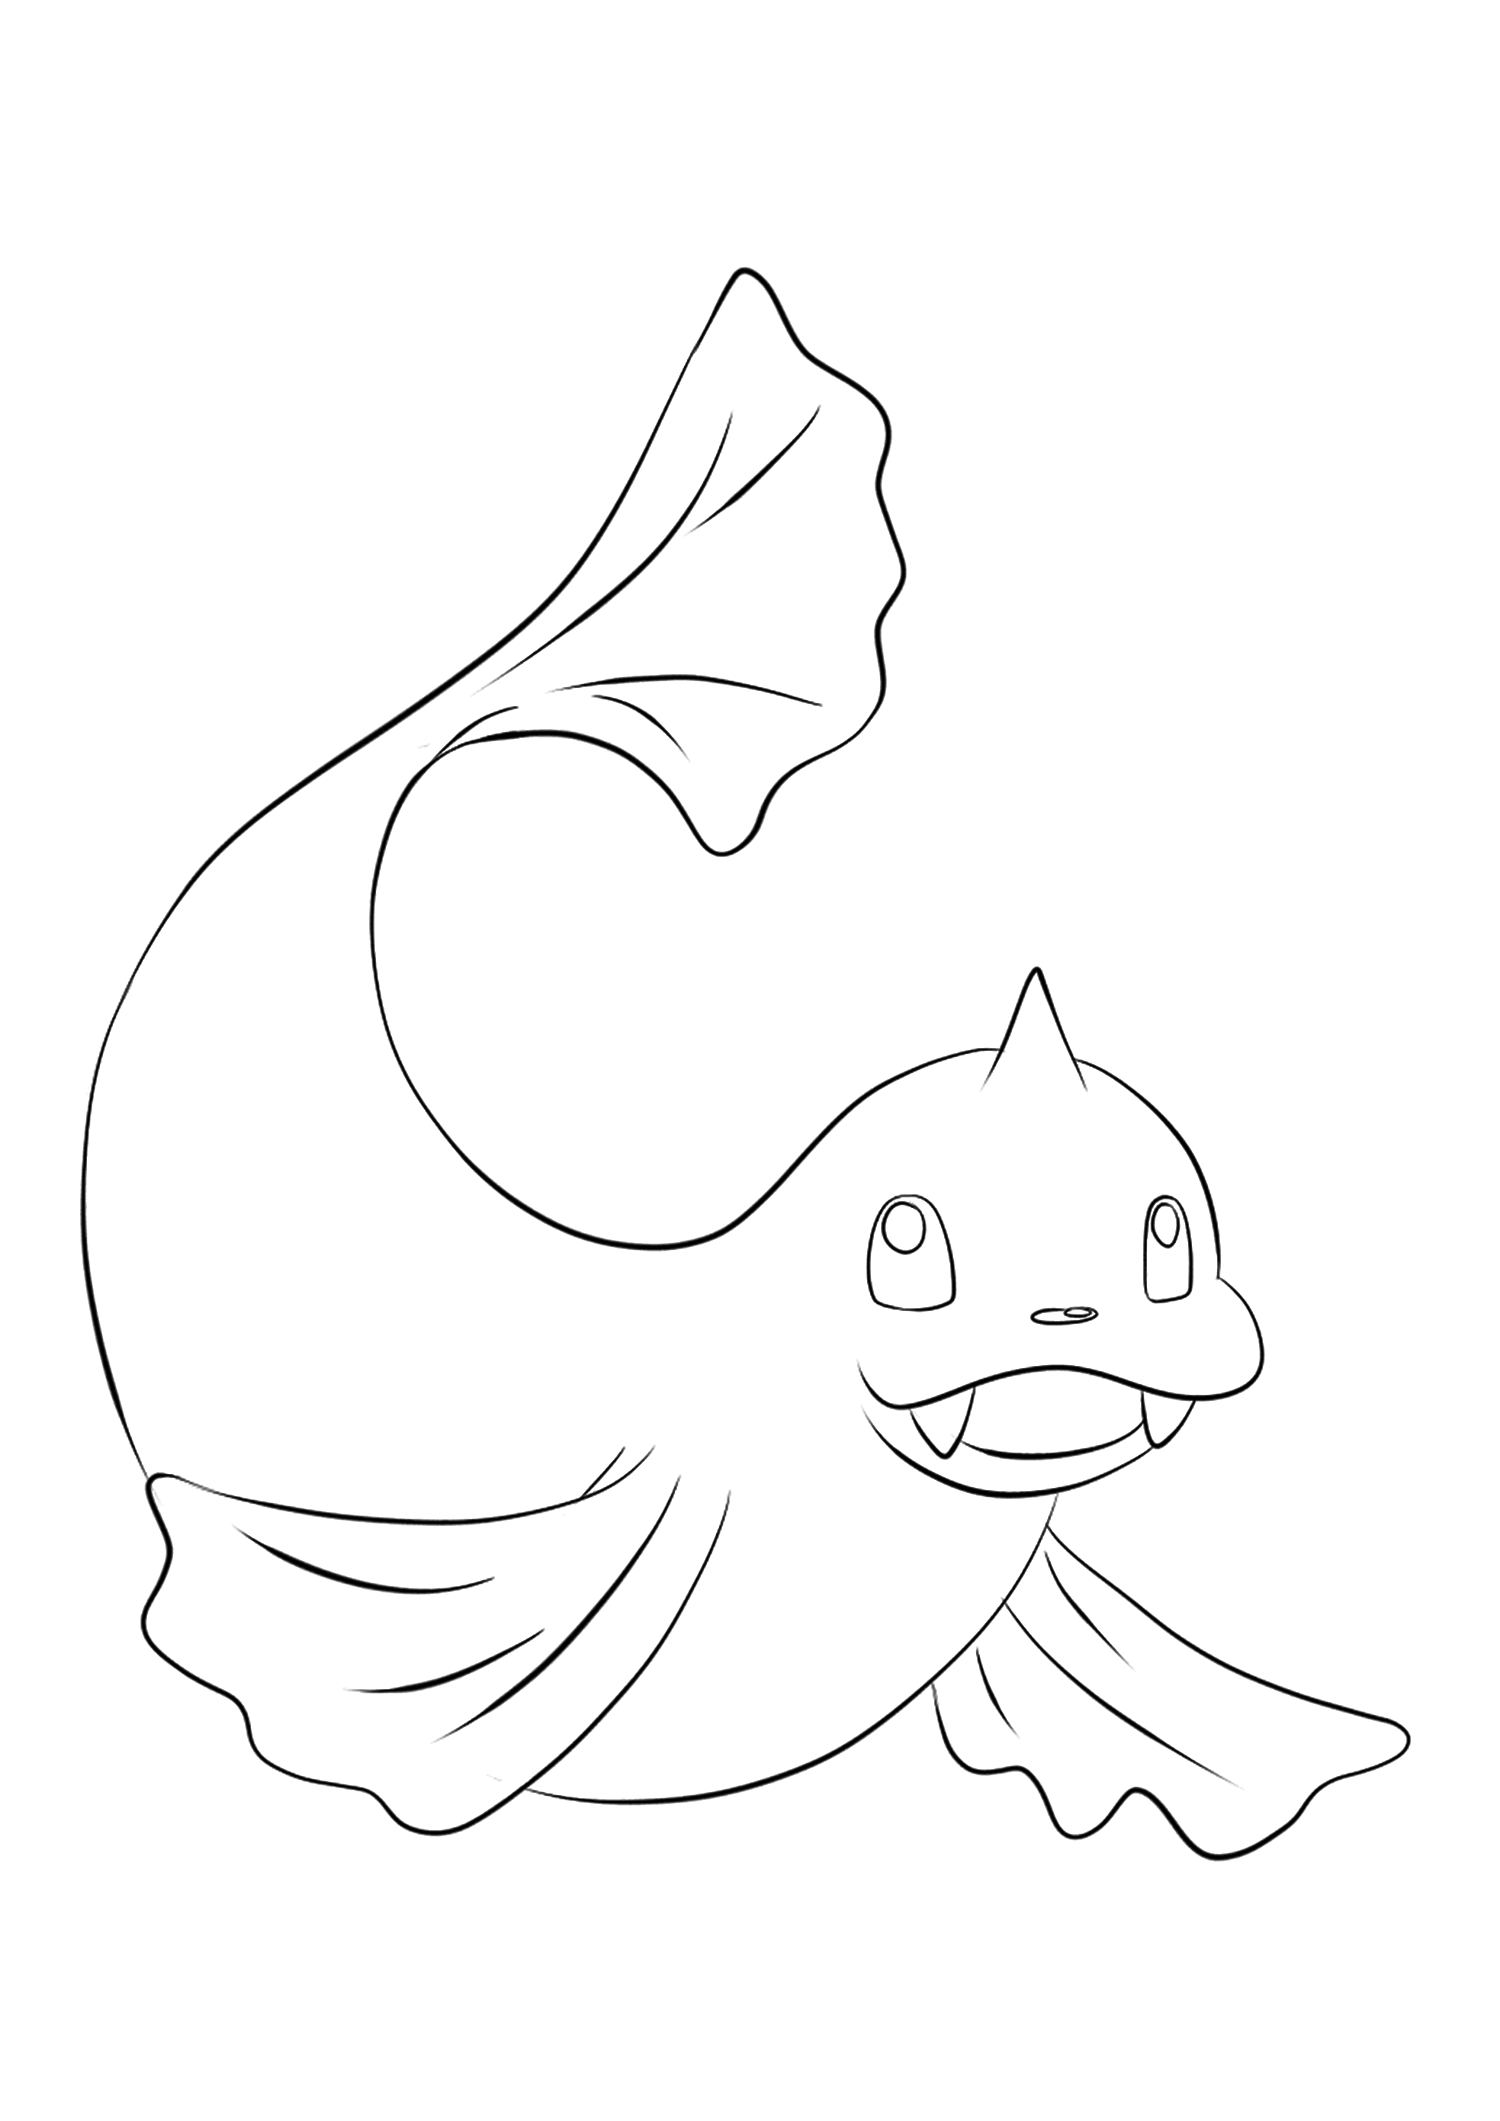 Dewgong (No.87)Dewgong Coloring page, Generation I Pokemon of type Water and IceOriginal image credit: Pokemon linearts by Lilly Gerbil on Deviantart.Permission:  All rights reserved © Pokemon company and Ken Sugimori.